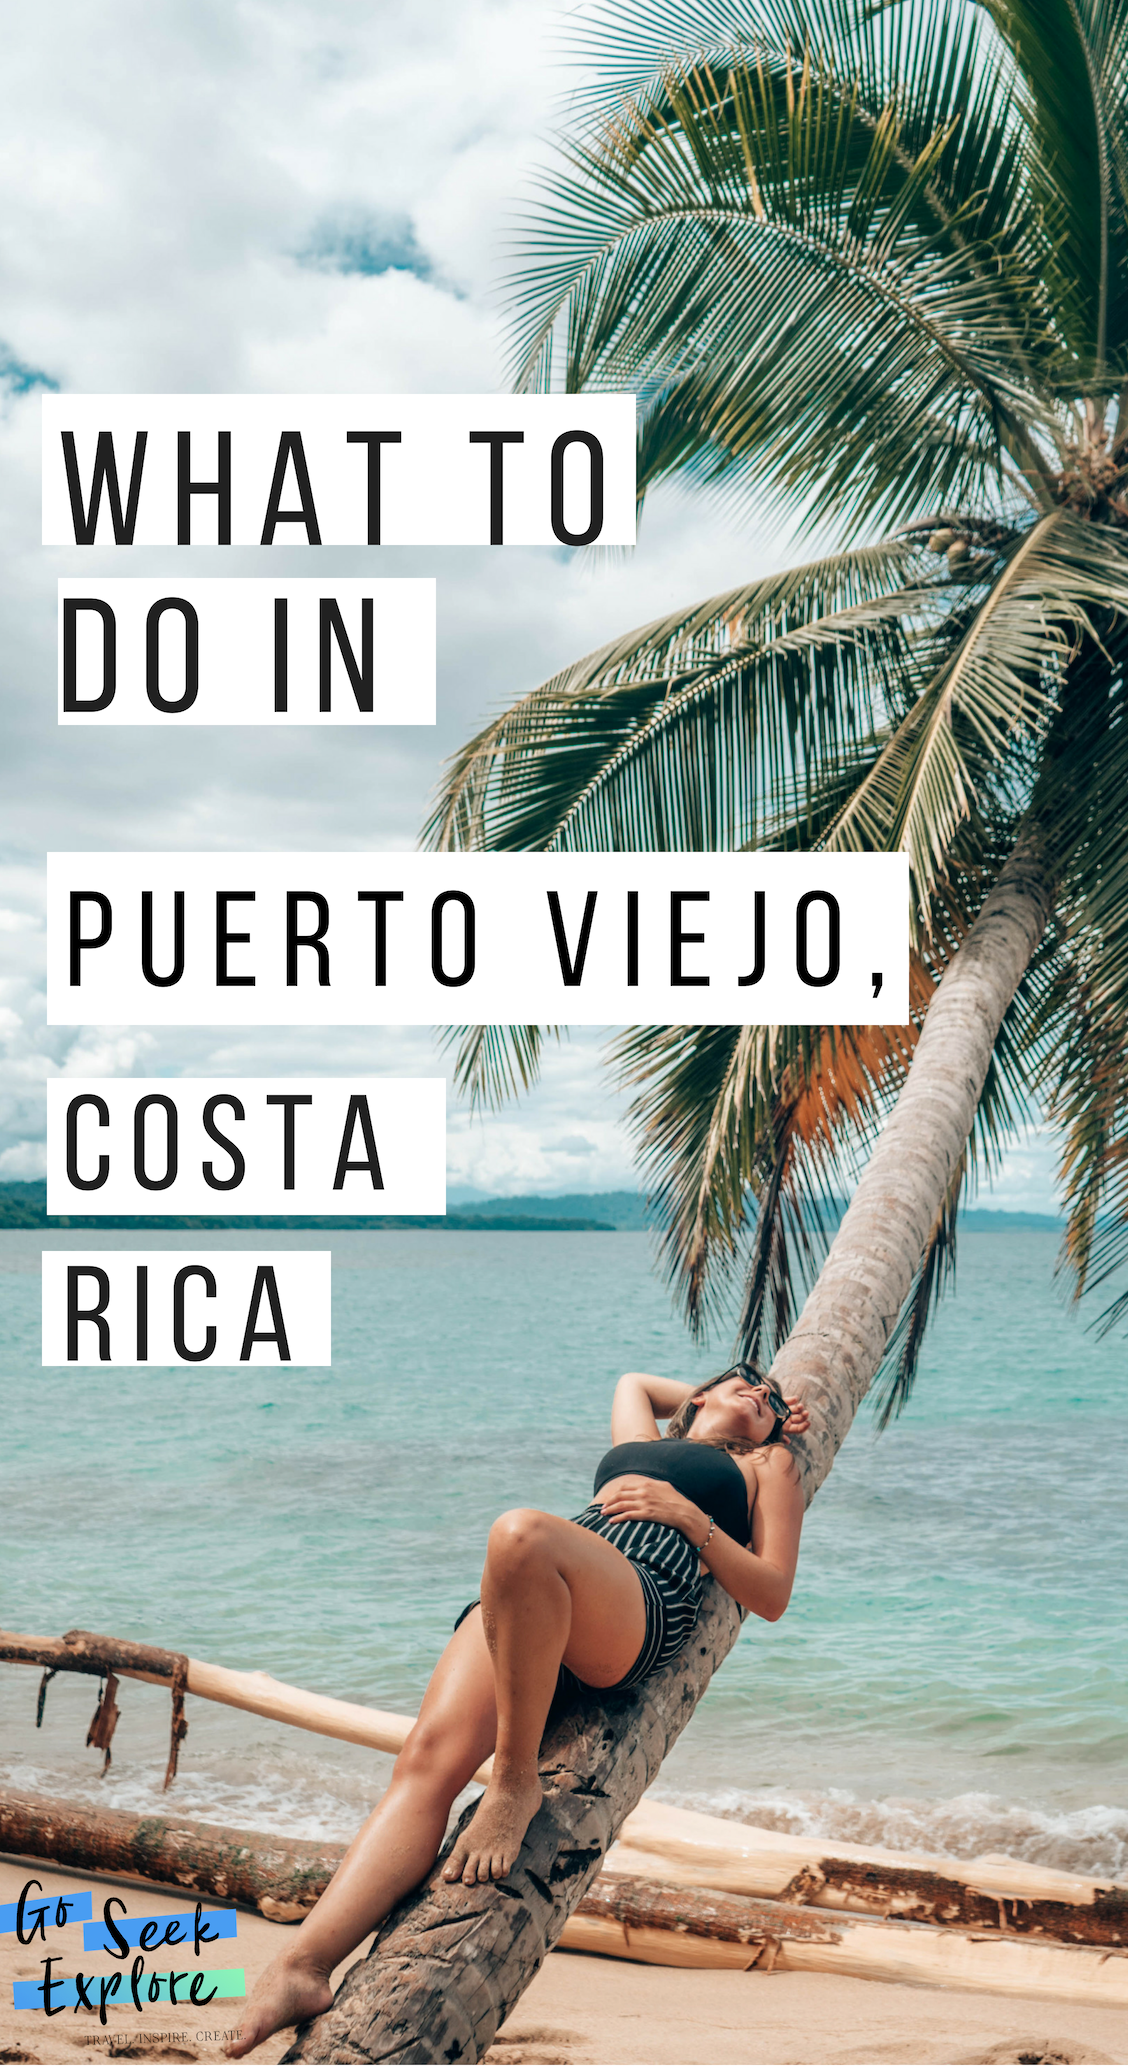 What to do in Puerto Viejo, Costa Rica / goseekexplore.com / allyarcher